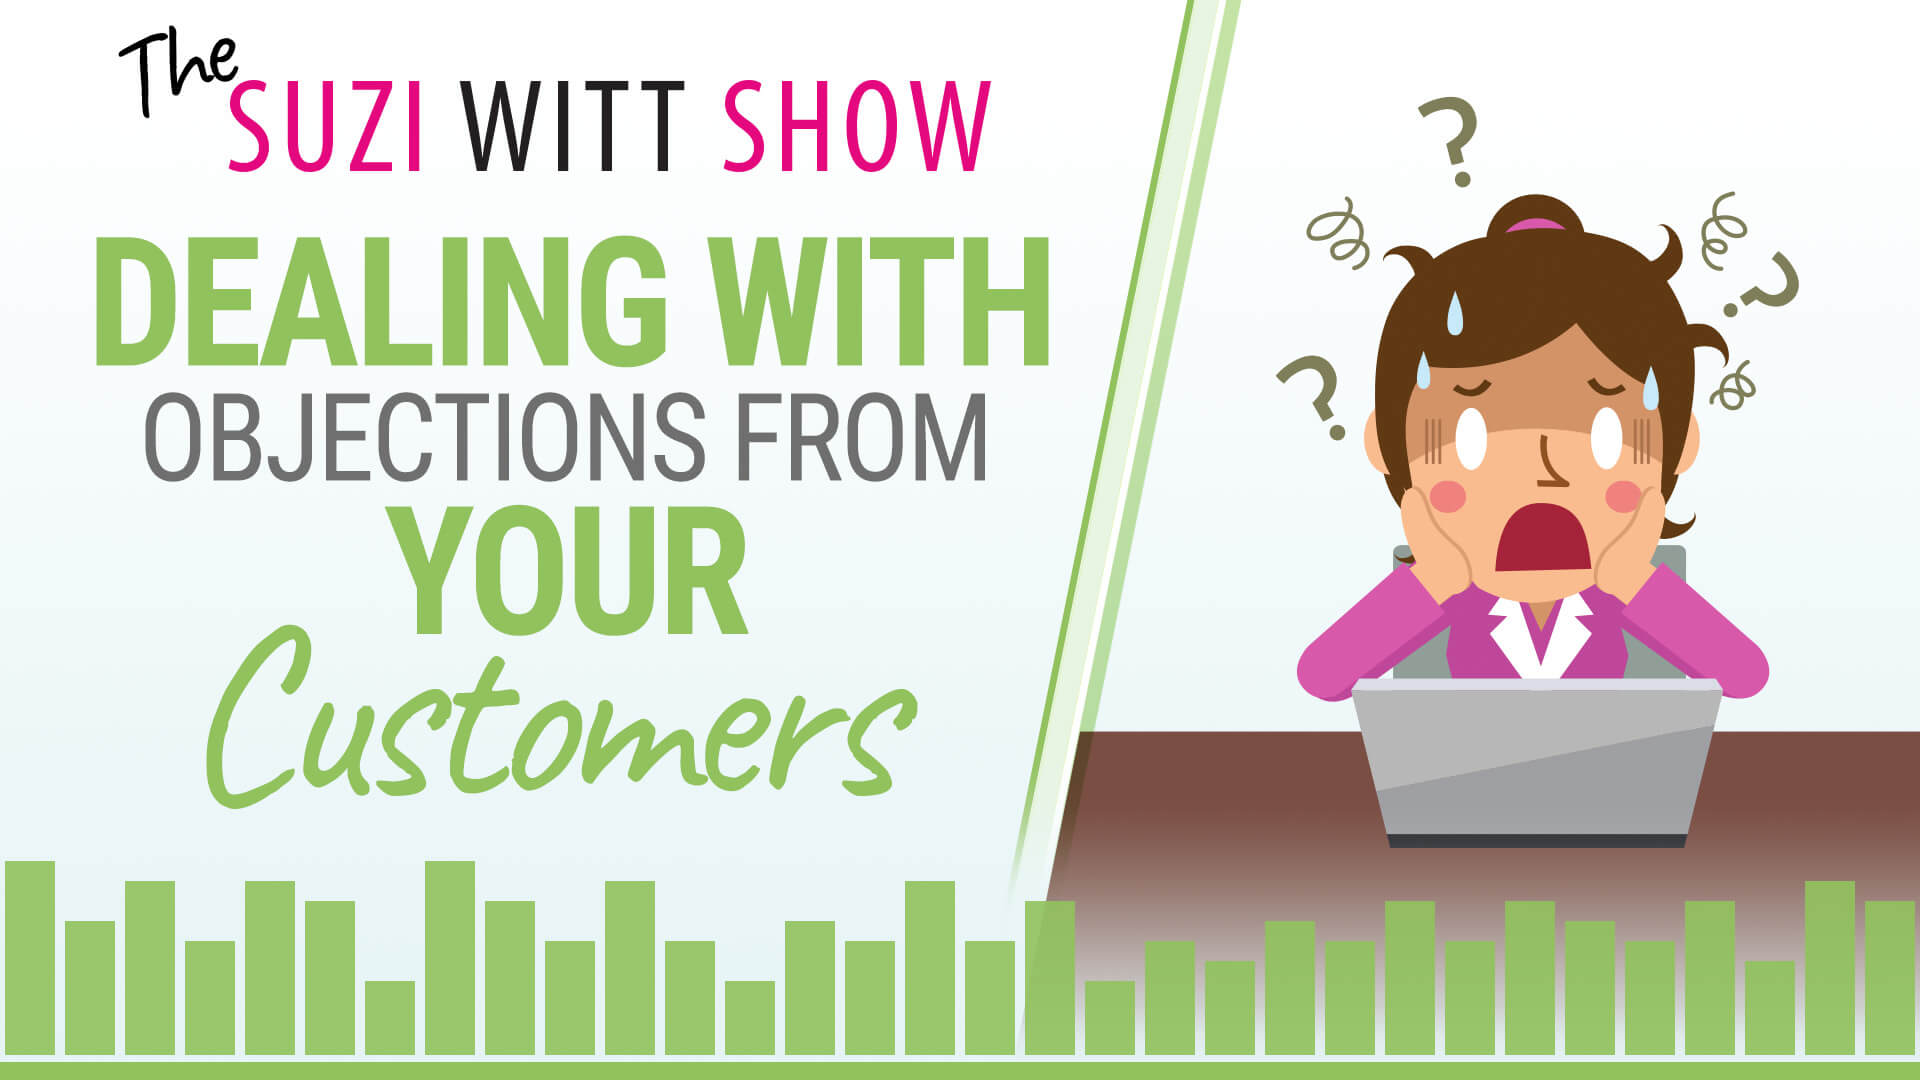 Dealing with Objections From Your Customers